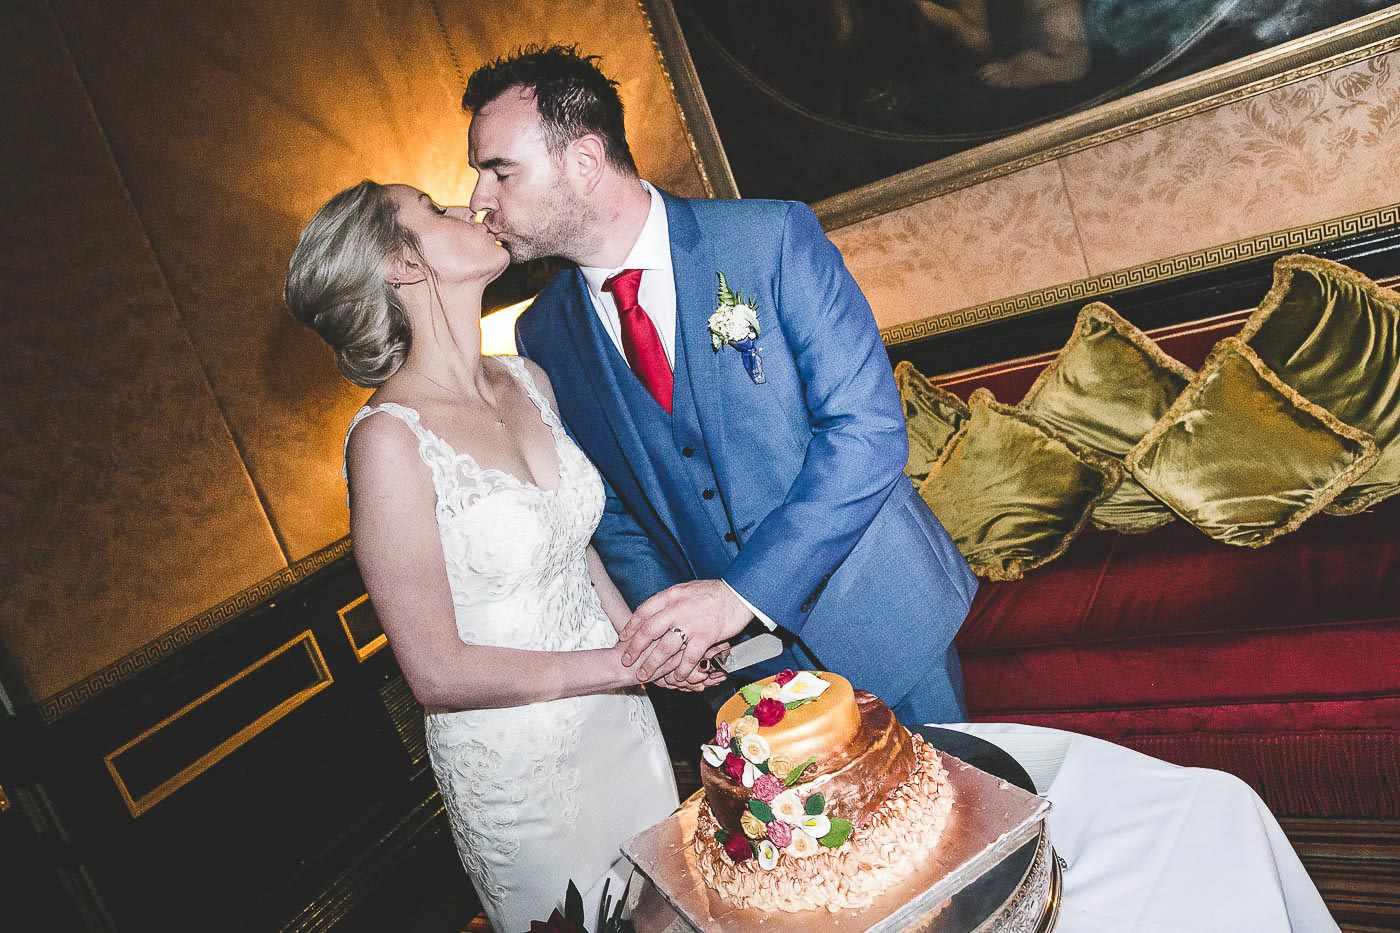 Merchant Hotel Wedding, Cake cutting